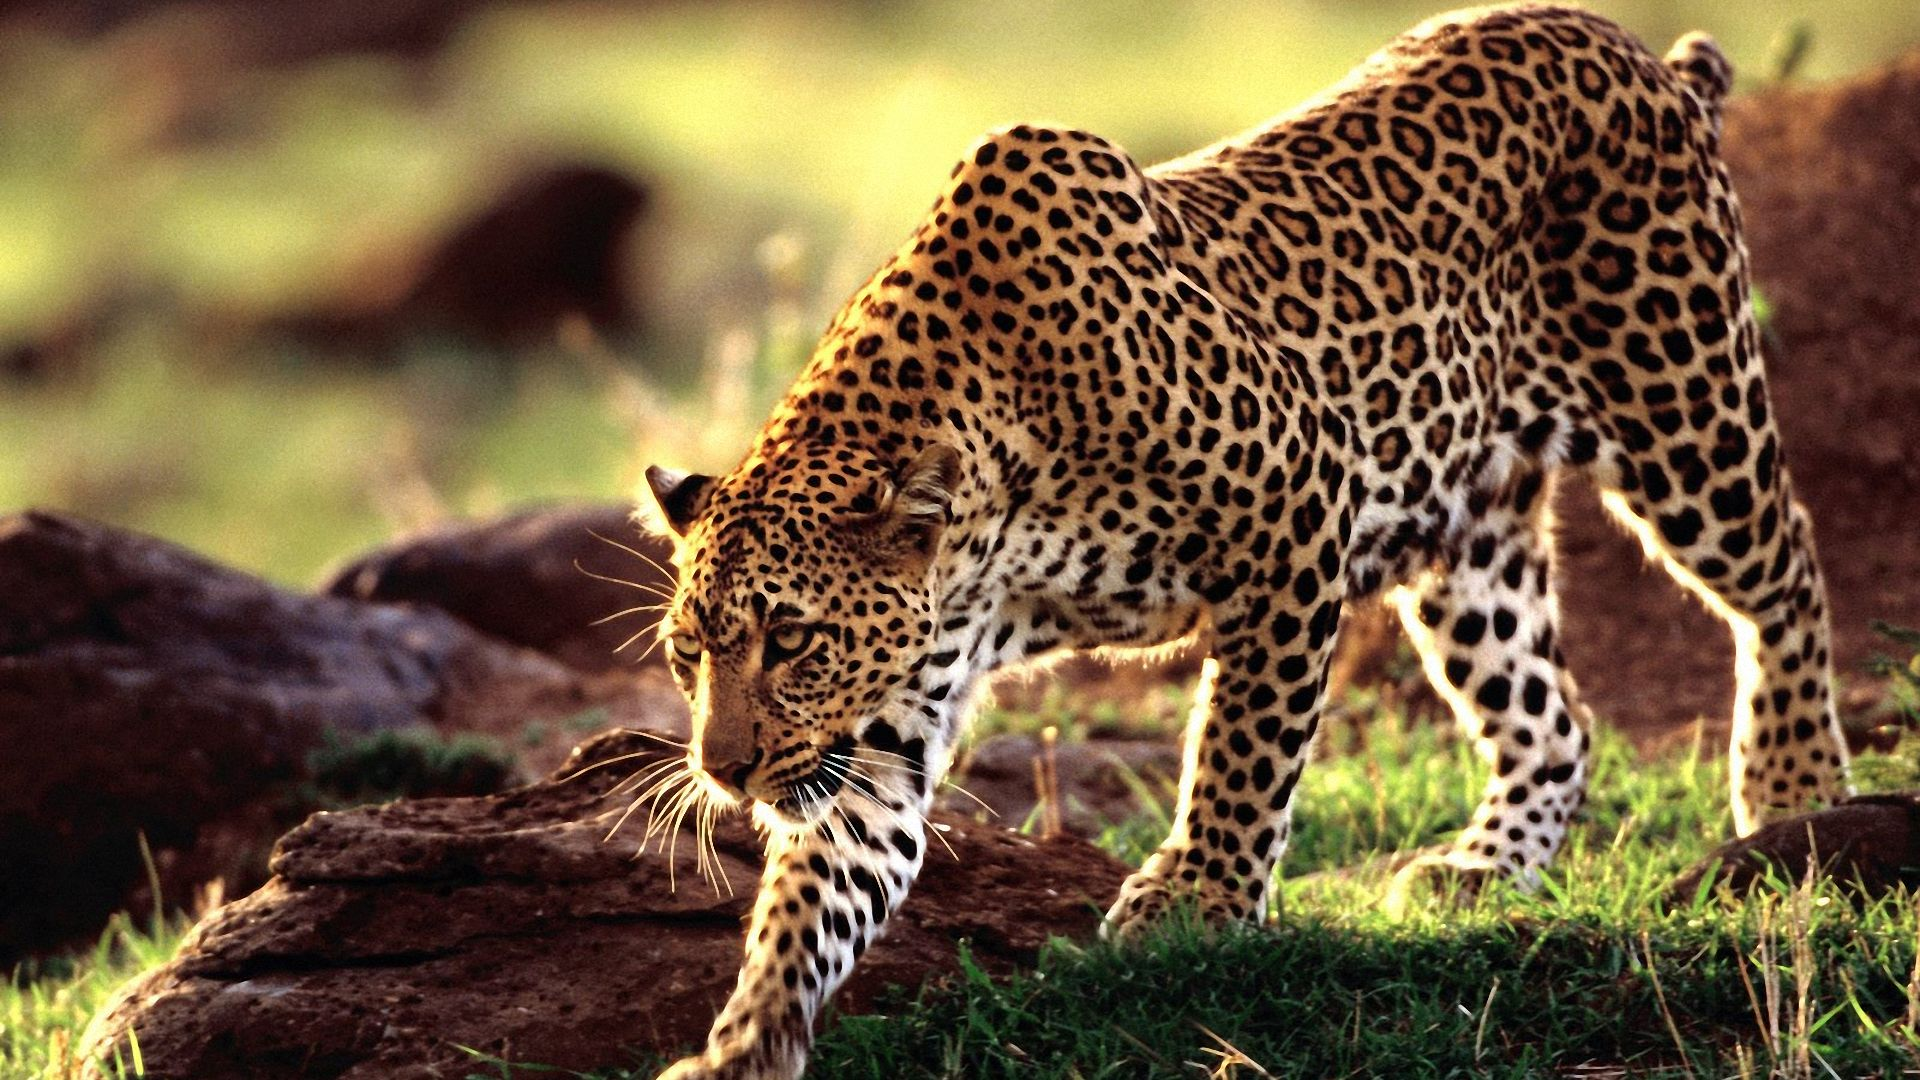 Stunning Leopard Wallpaper